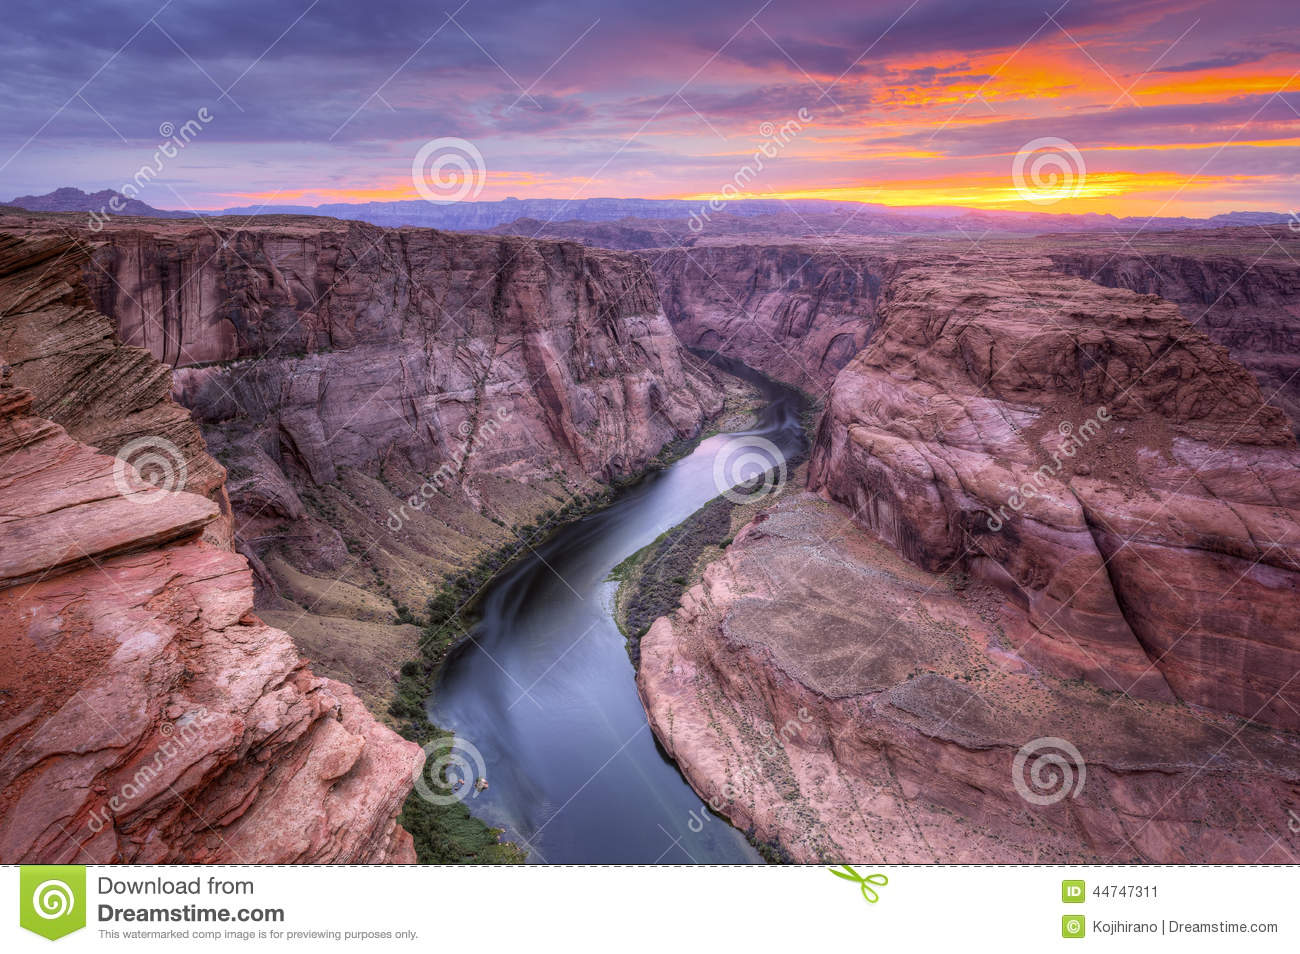 Colorado River, Horseshoe Bend at Sunset